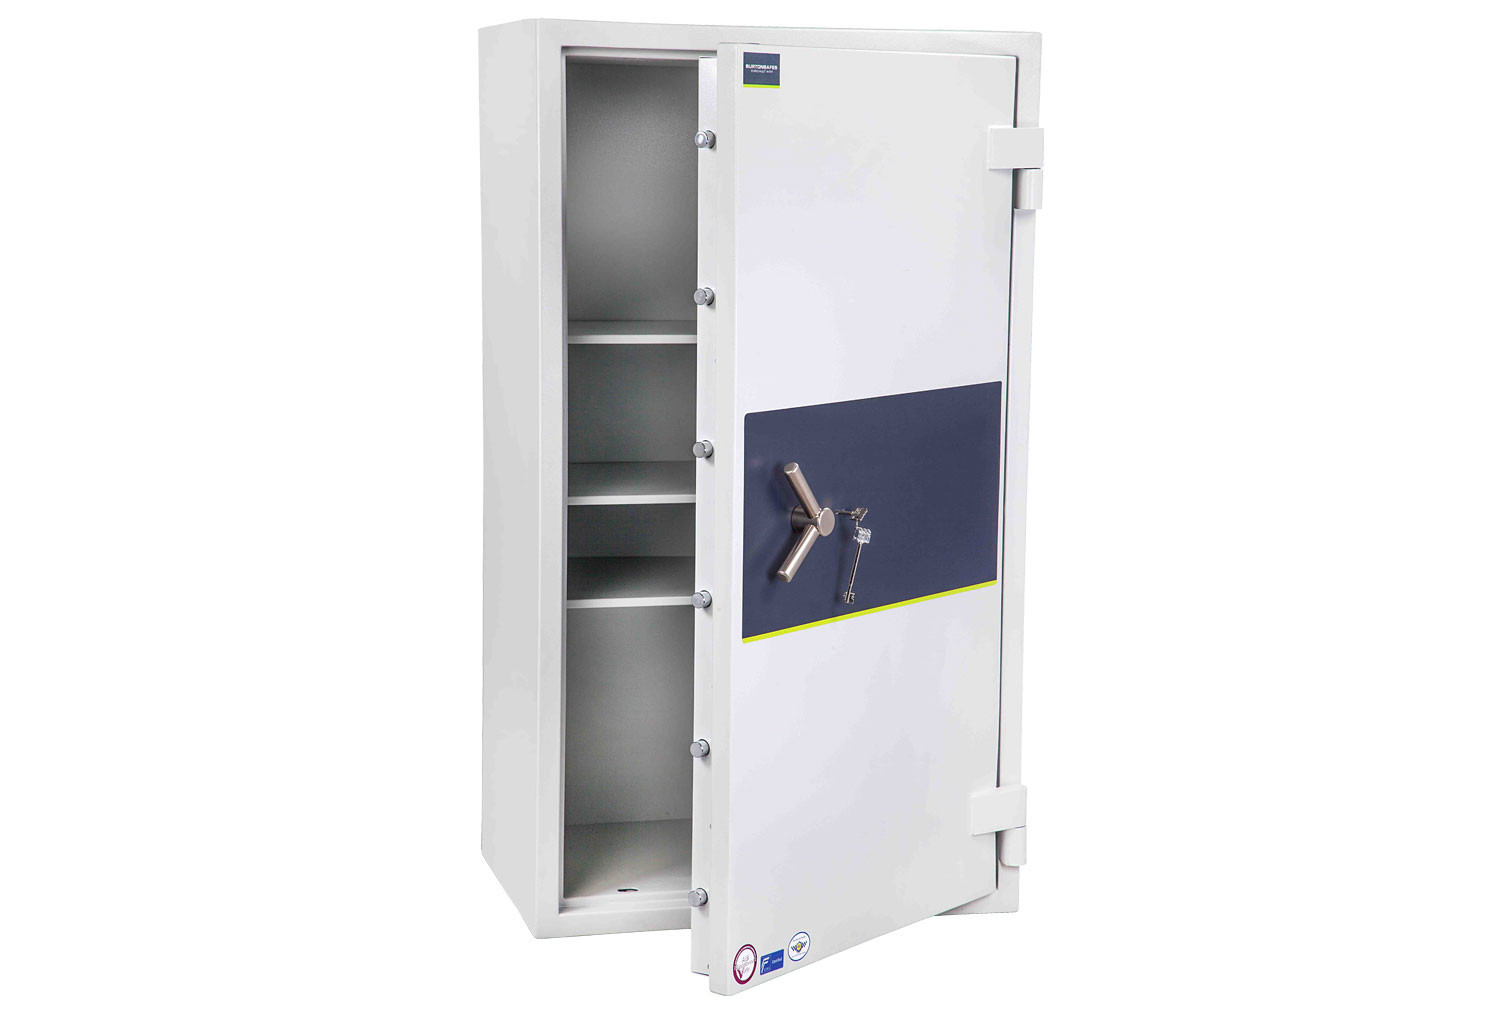 Burton Eurovault Aver Grade 2 Size 7 Safe With Key Lock (462ltrs)